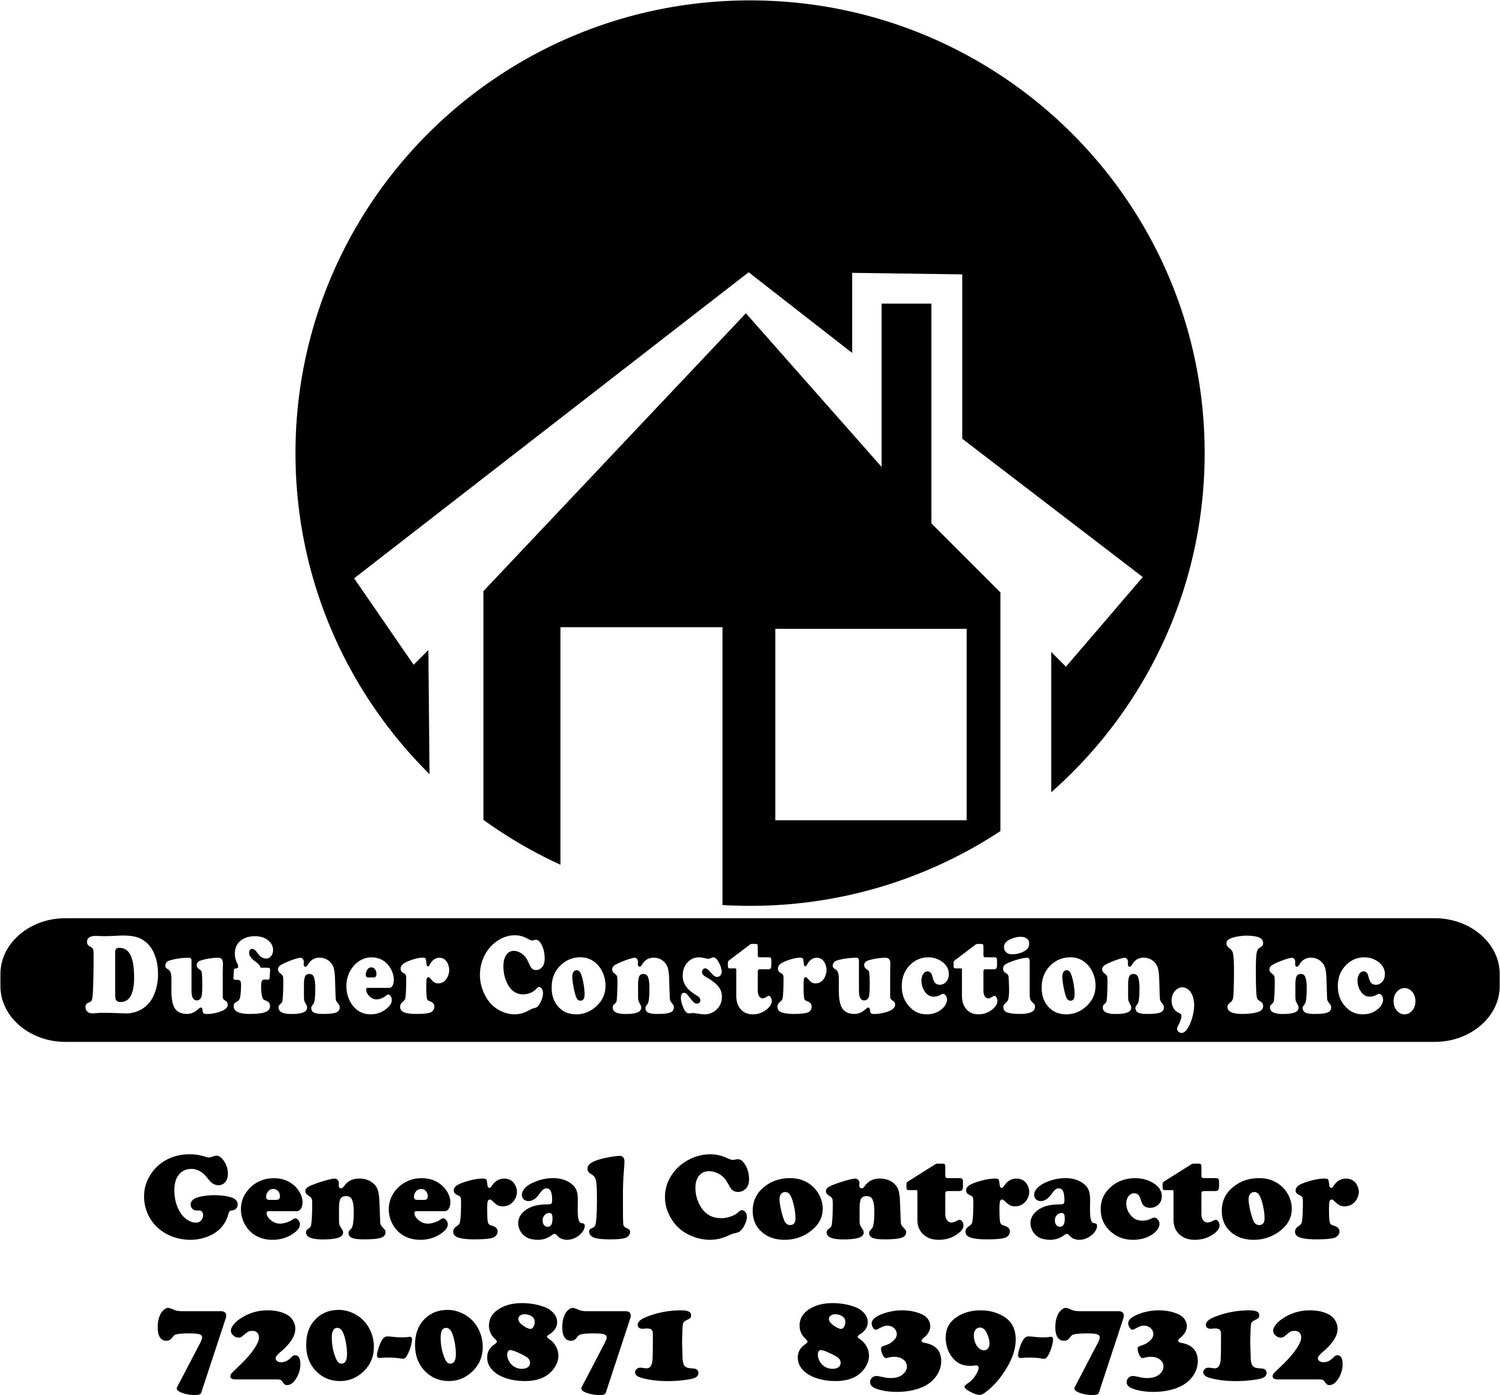 Dufner Construction